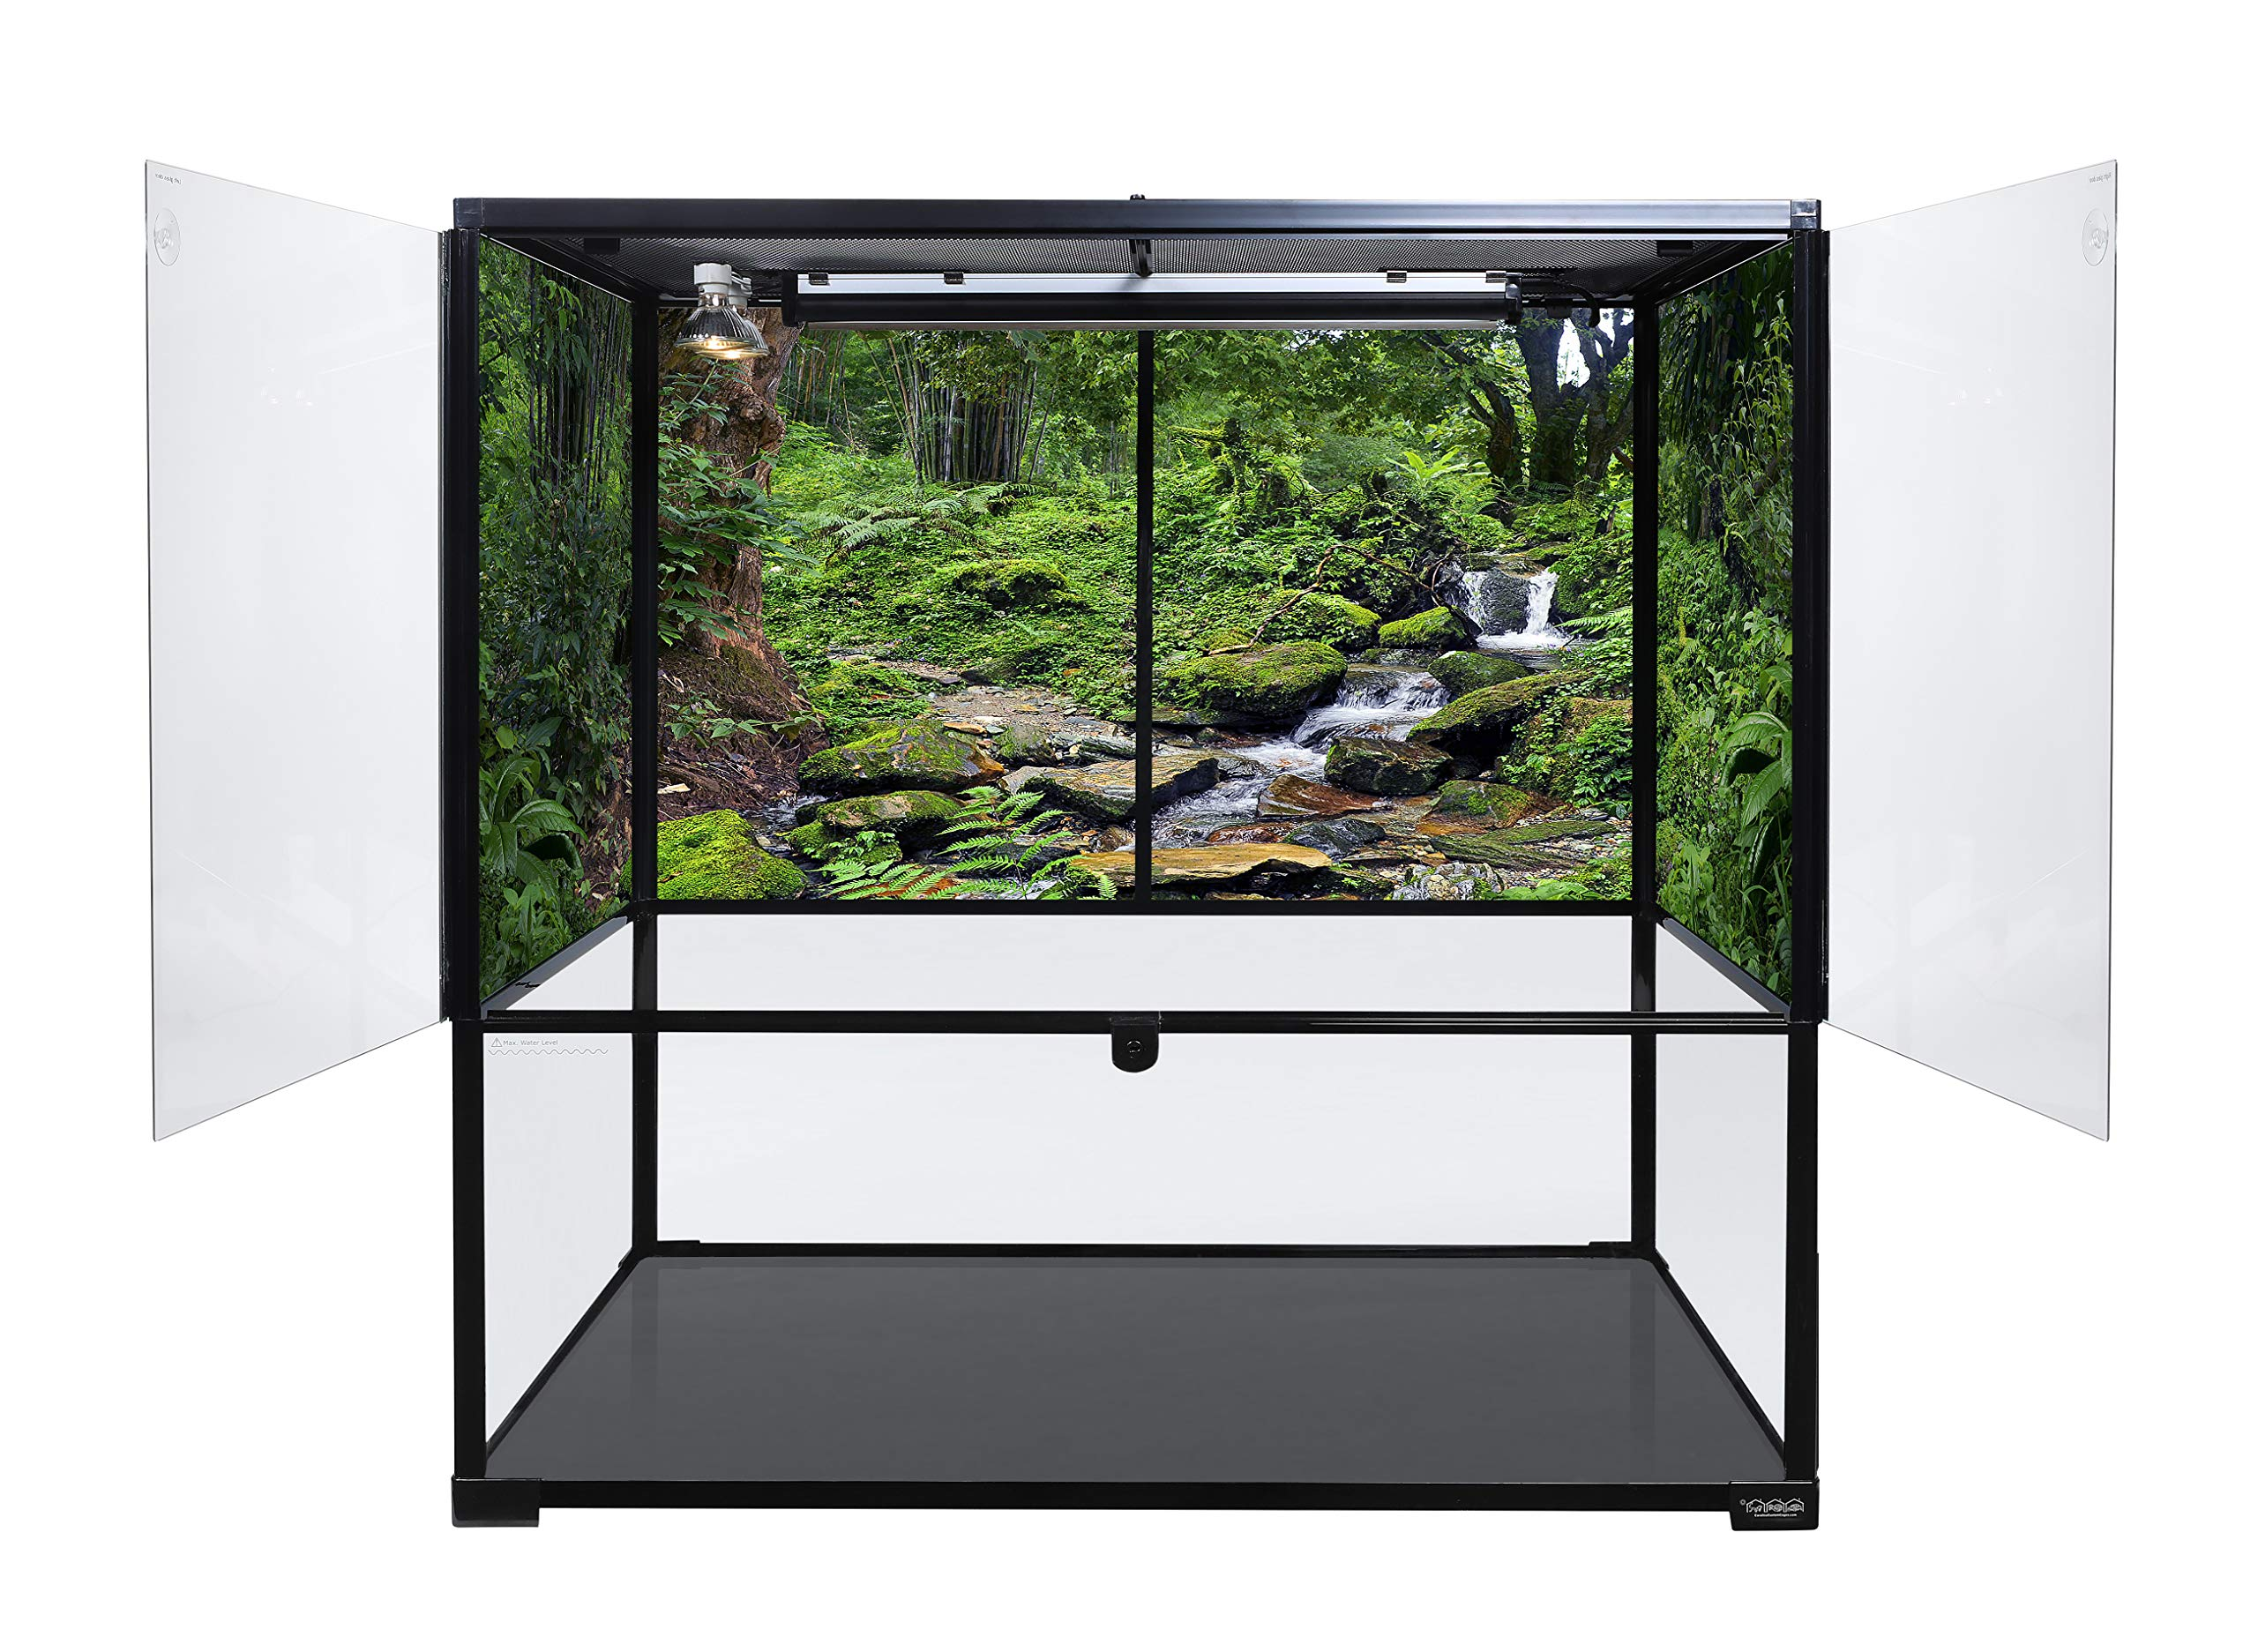 Carolina Custom Cages Terrarium, Bio Deep 36Lx18Wx36H; Easy Assembly by Carolina Custom Cages